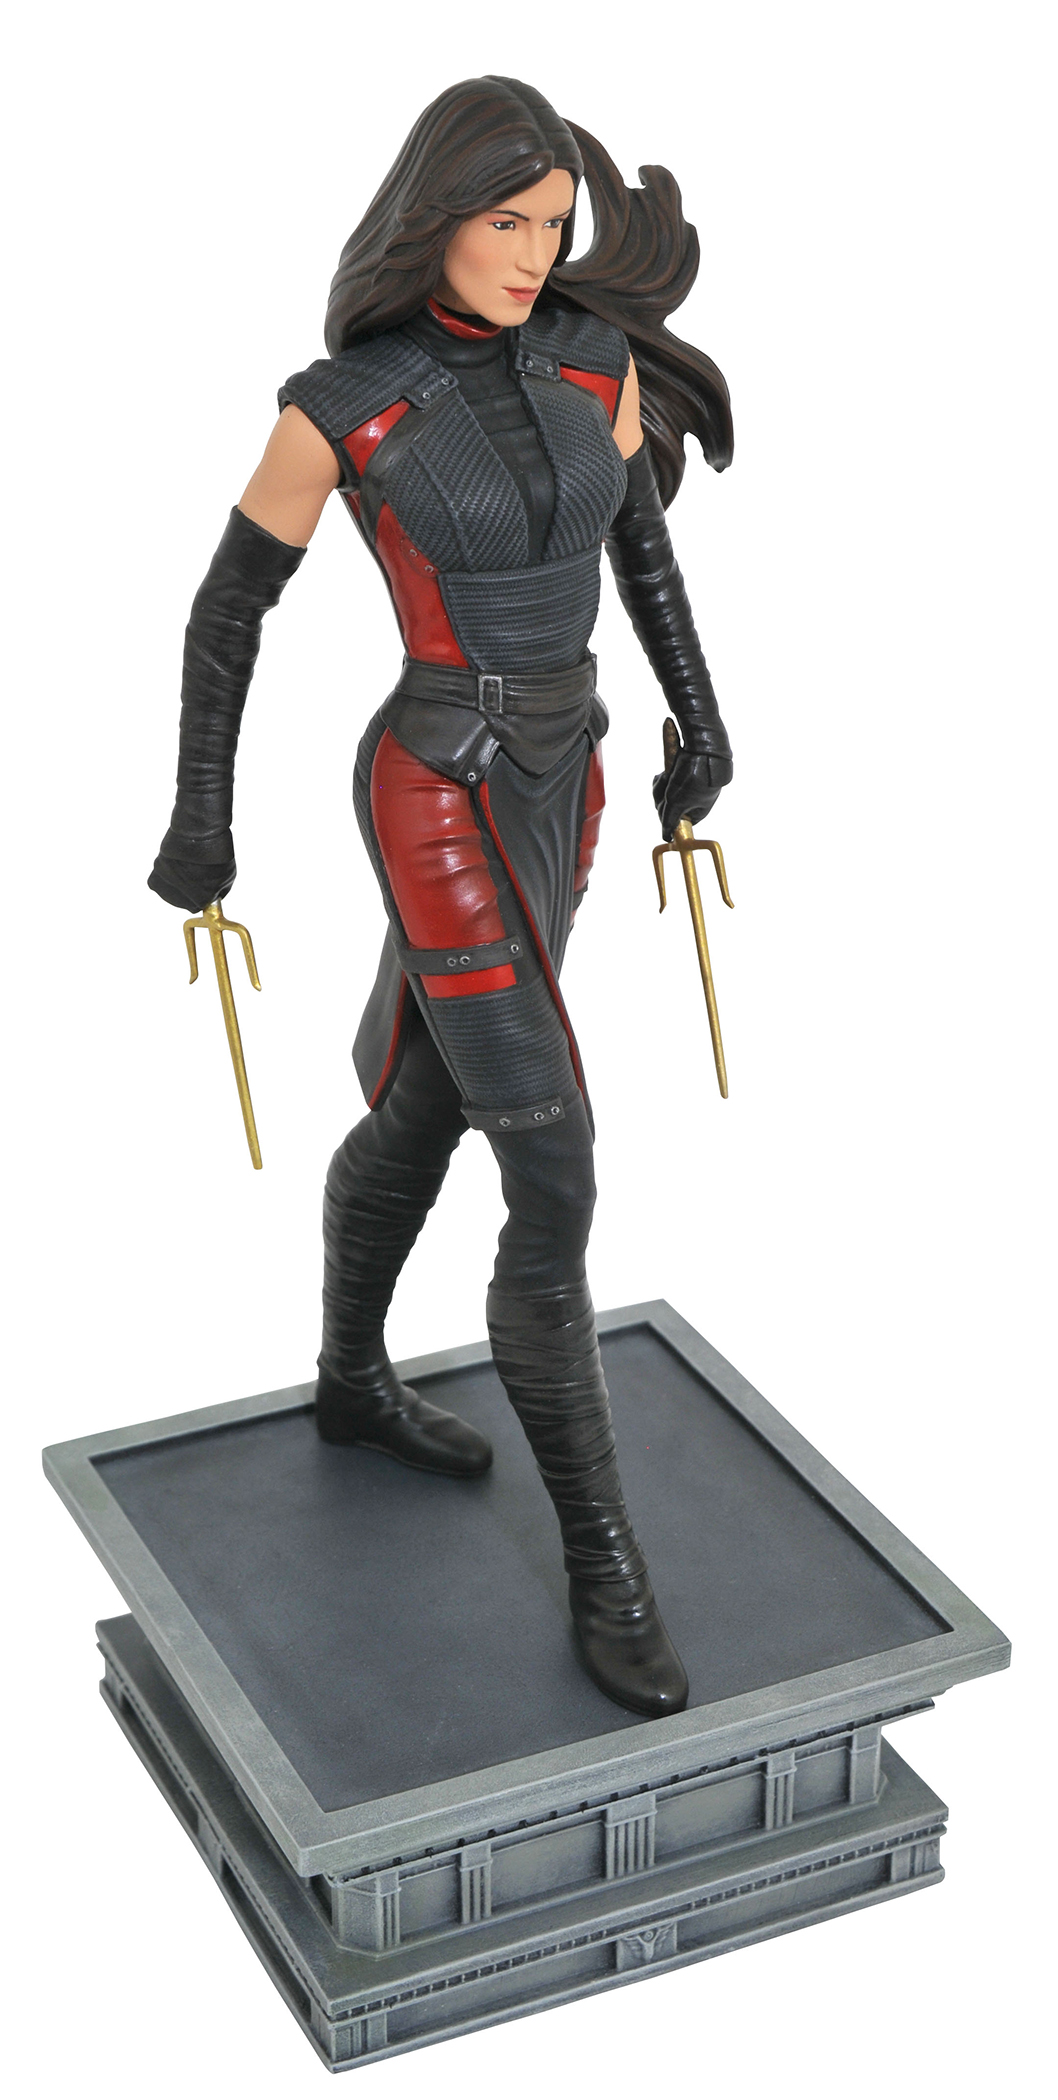 Thor Ragnarok Hela 16 Scale Figure Hot Toys 277512 besides Hot Toys Avengers Infinity War Sixth Scale Figures also Marvel Star Lord Deluxe Version Hot Toys 903010 additionally Three New Avengers Infinity War Marvel Legends Sets Announced likewise 182084. on thor action figure toys